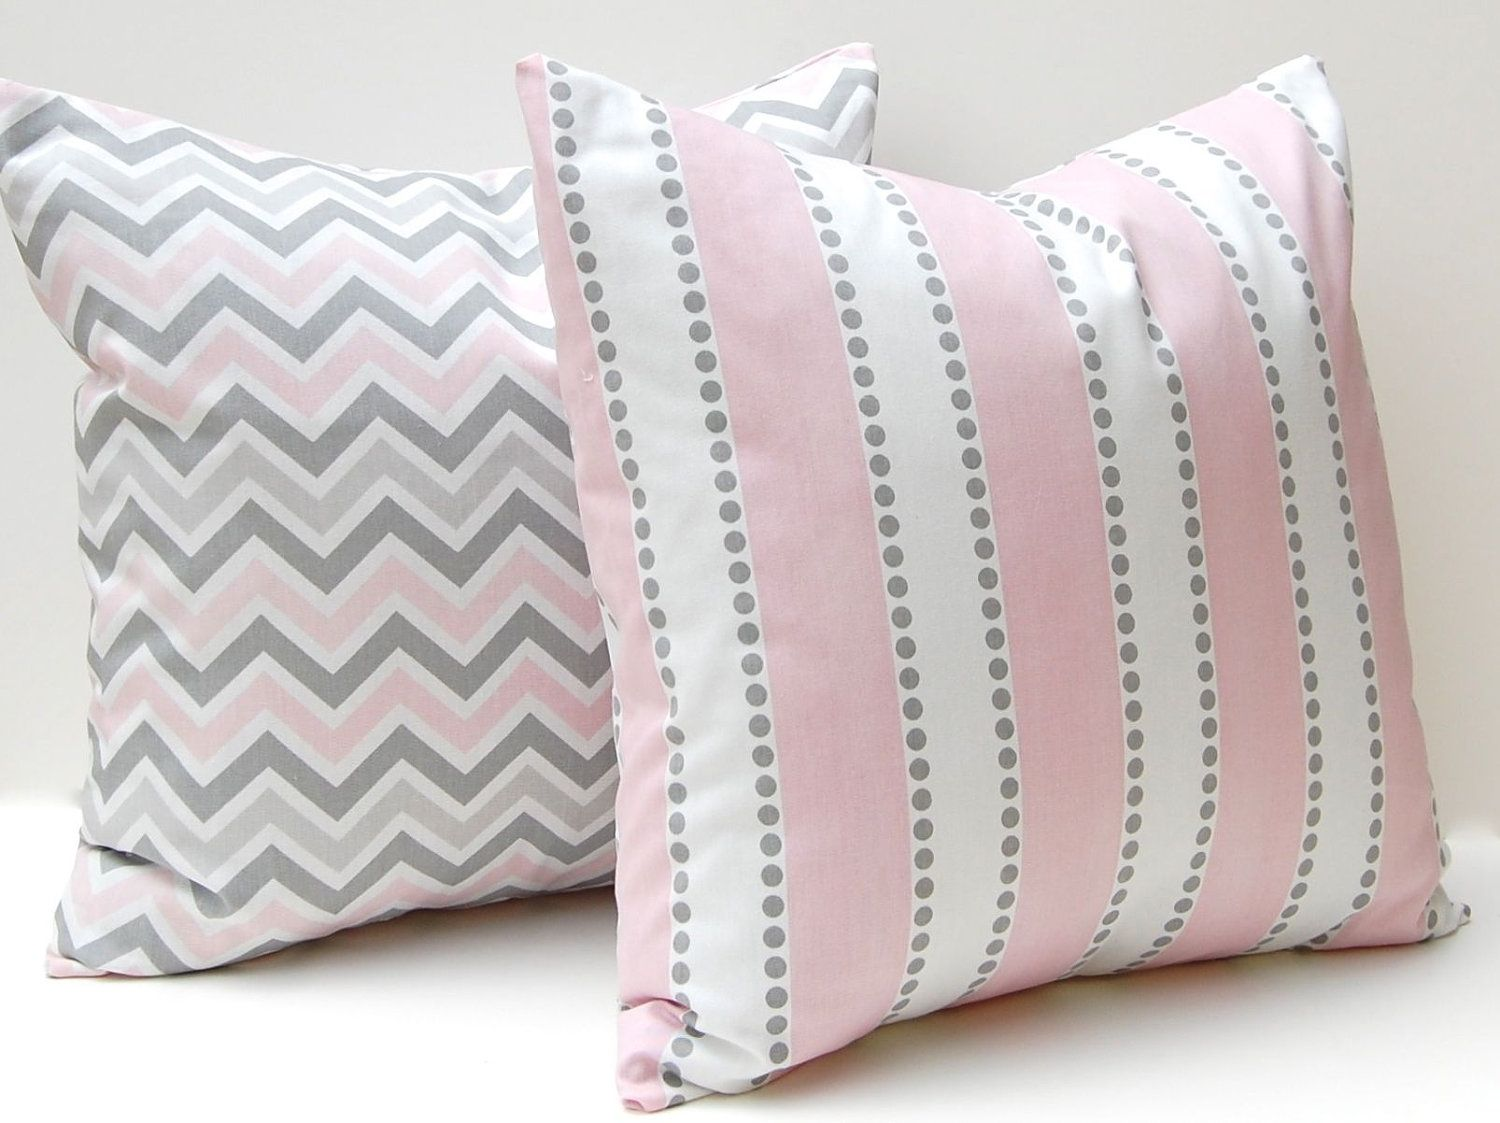 Grey And Pink Decorative Pillows : Chevron Pillow Decorative Throw Pillow Covers Baby Girl Nursery 18 x 18 Pink and Gray Chevron ...